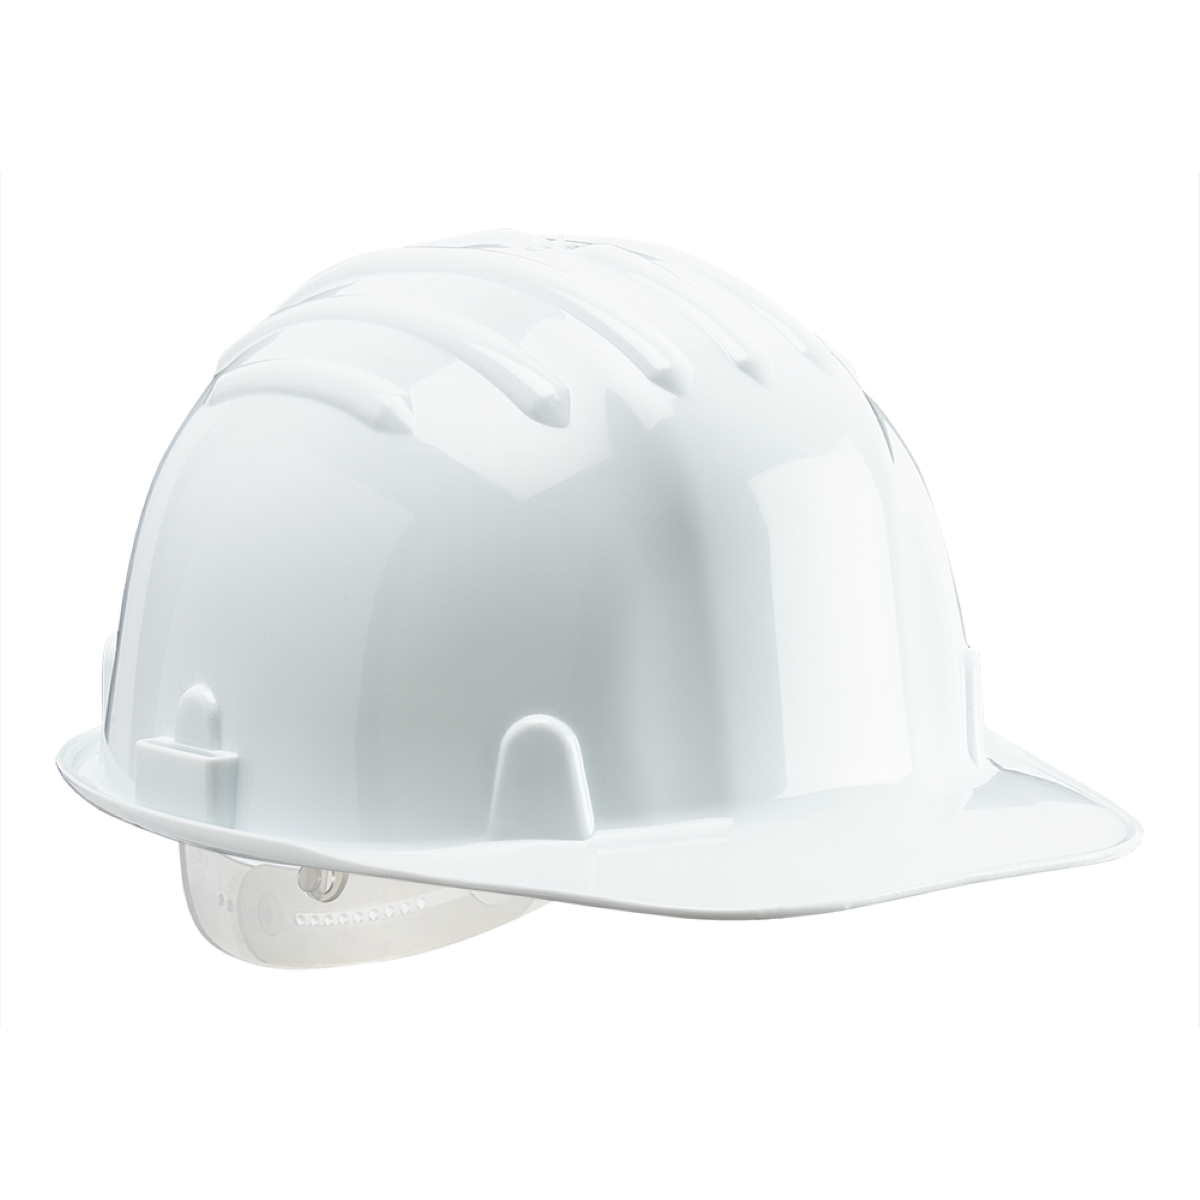 HF0110 Basic Safety Helmet